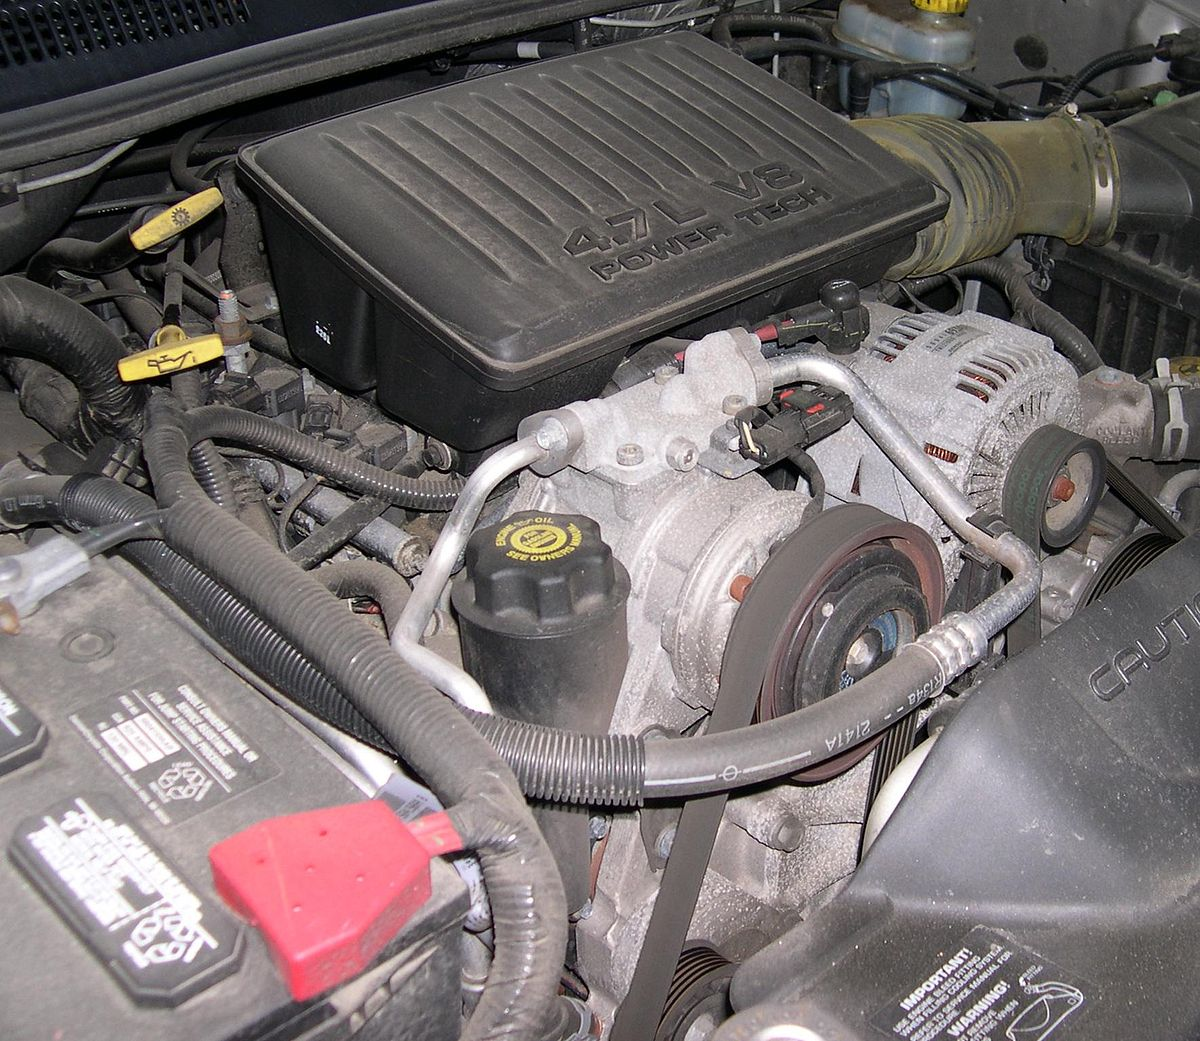 dodge ram 1500 fuel system diagram chrysler powertech engine wikipedia  chrysler powertech engine wikipedia